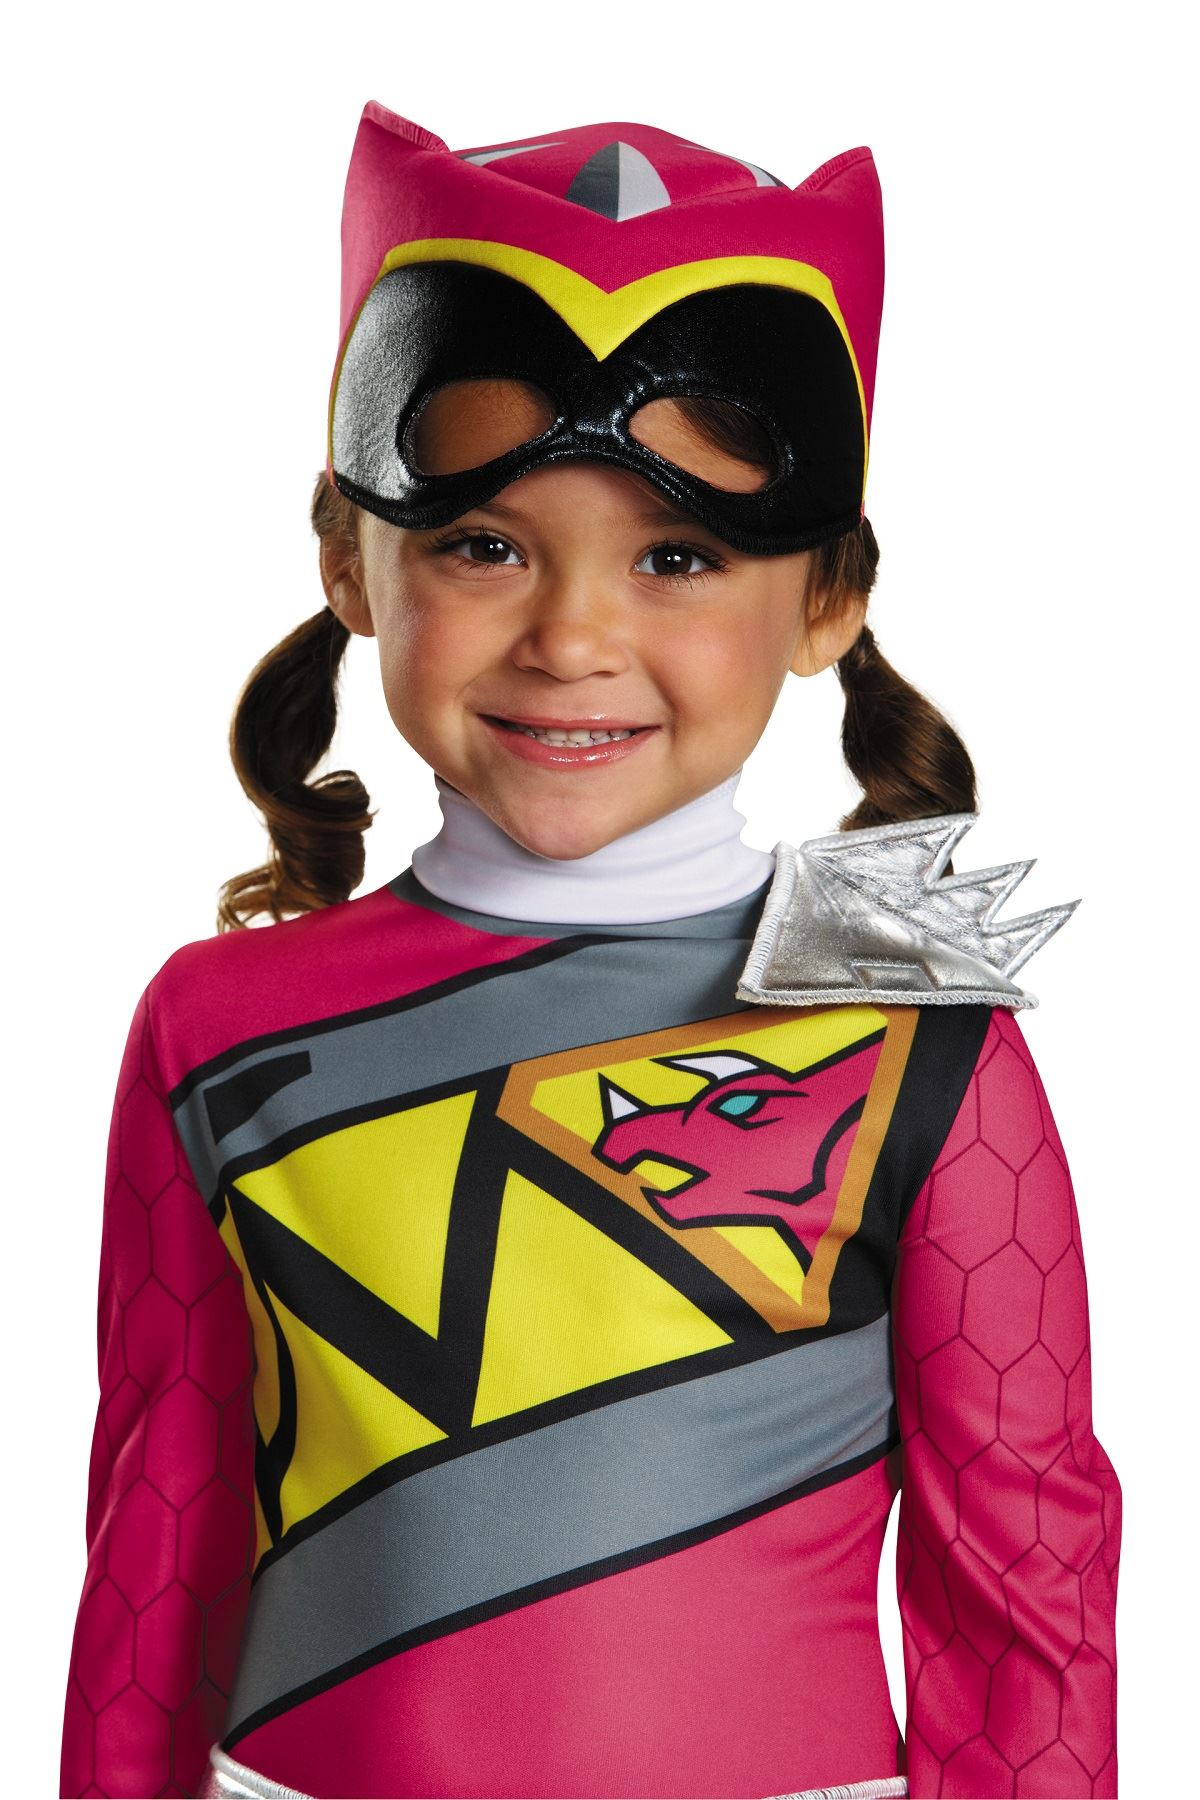 Kids Pink Power Ranger Dino Charge Costume | $15.99 | The Costume Land